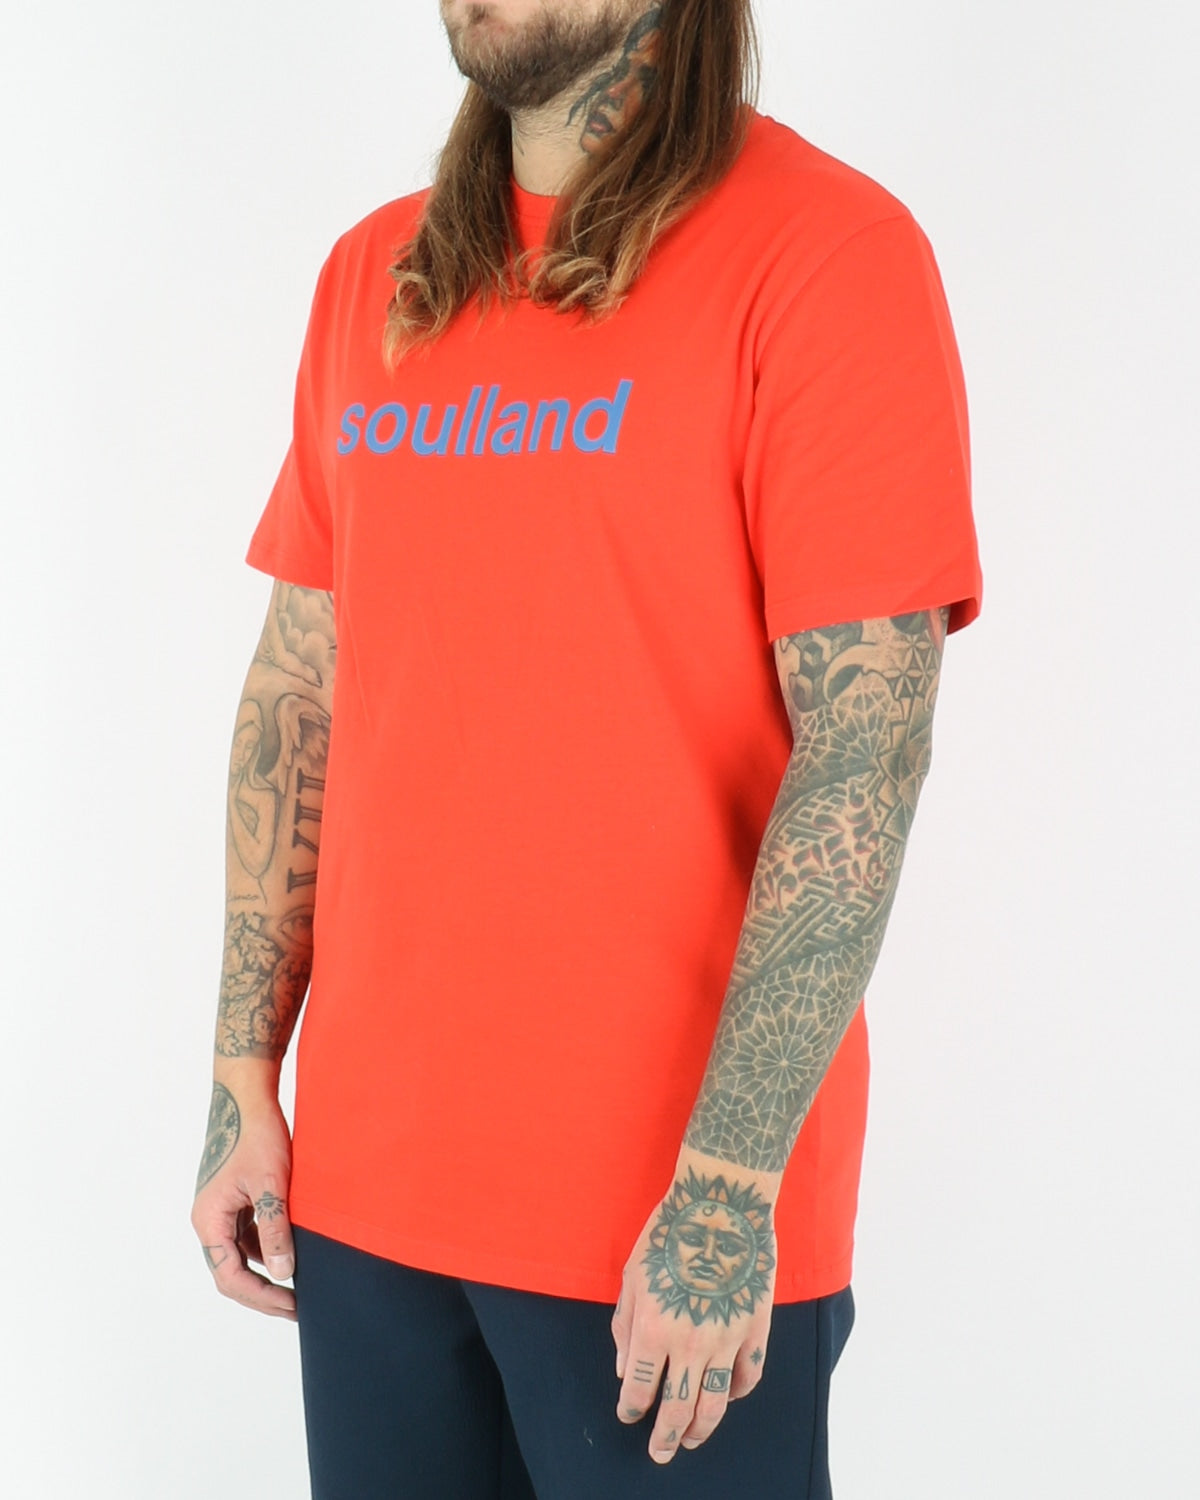 soulland_chuck t-shirt_red_2_3